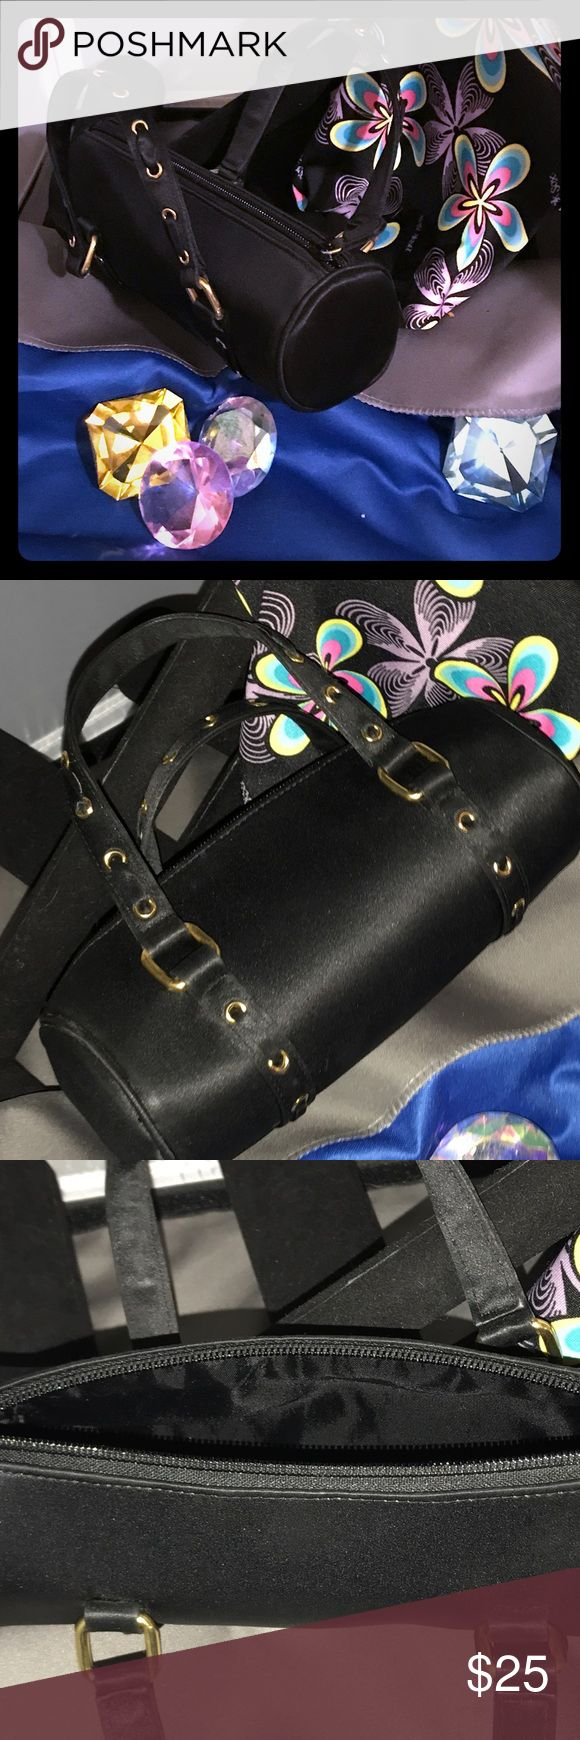 Nicole Miller Mini Shoulder Bag Super Cute Black Nicole Miller Mini Duffle Style Shoulder Bag. No visible flaws to either interior or exterior of Bag. Nicole Miller Bags Shoulder Bags